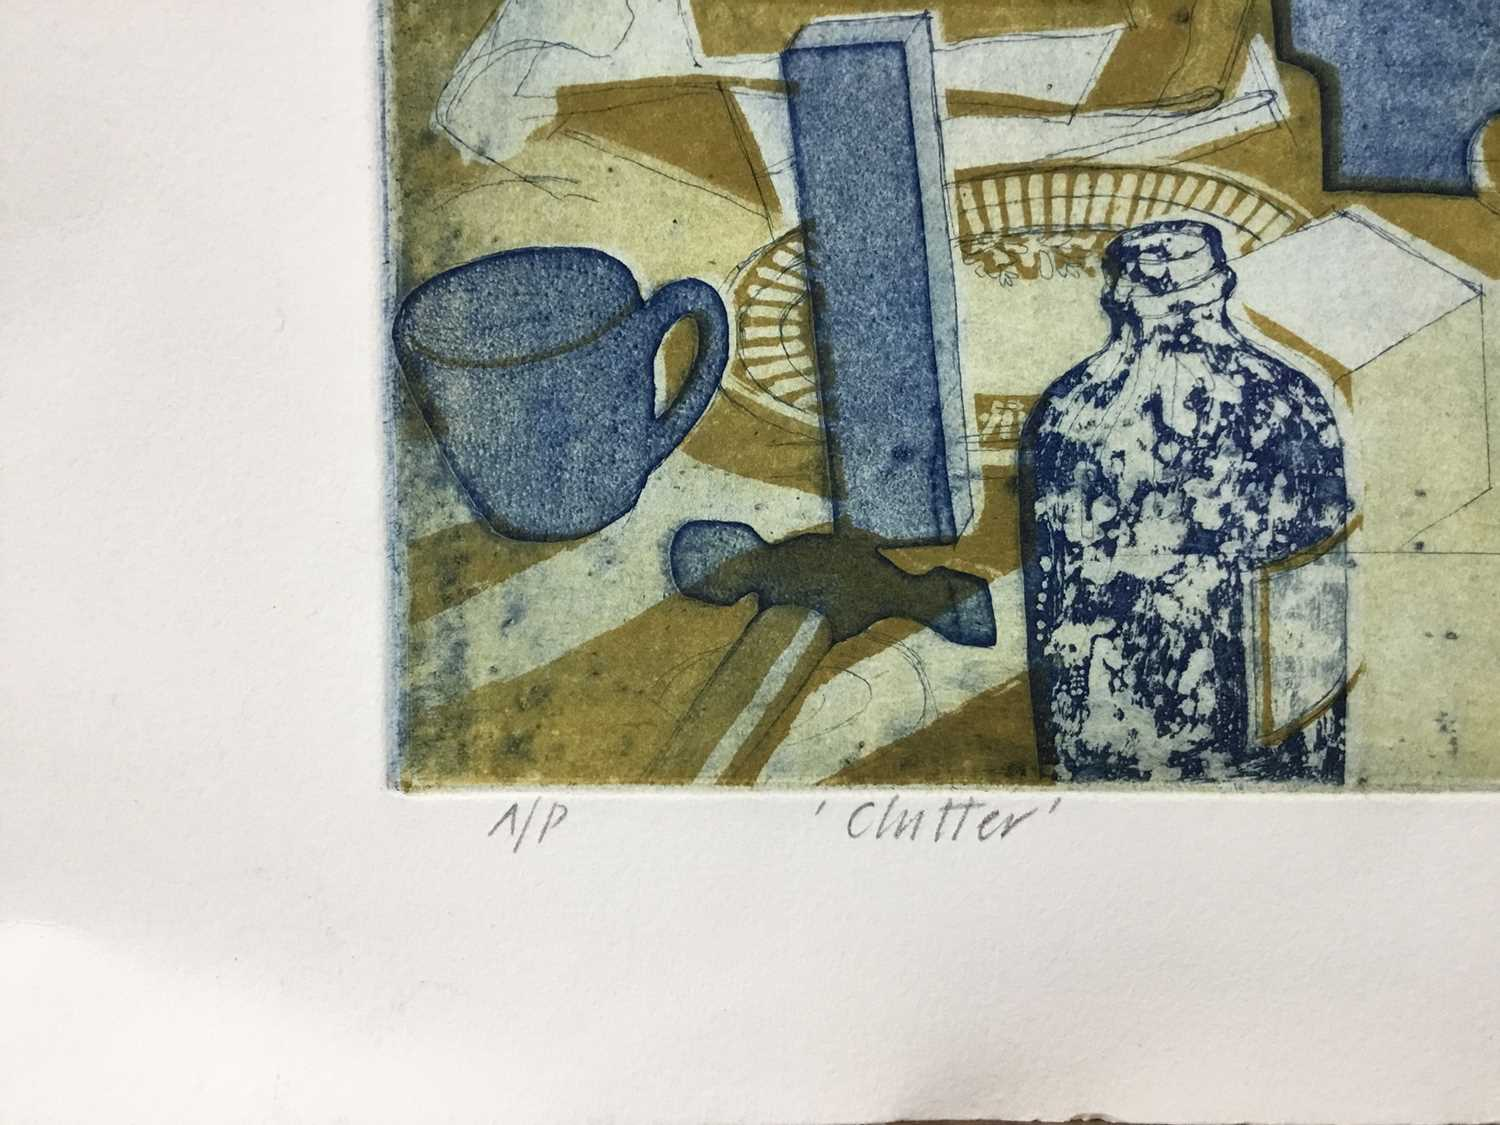 Richard Bawden (b. 1936) etching and aquatint in colours, Clutter, signed, artists proof, unframed. - Image 2 of 4